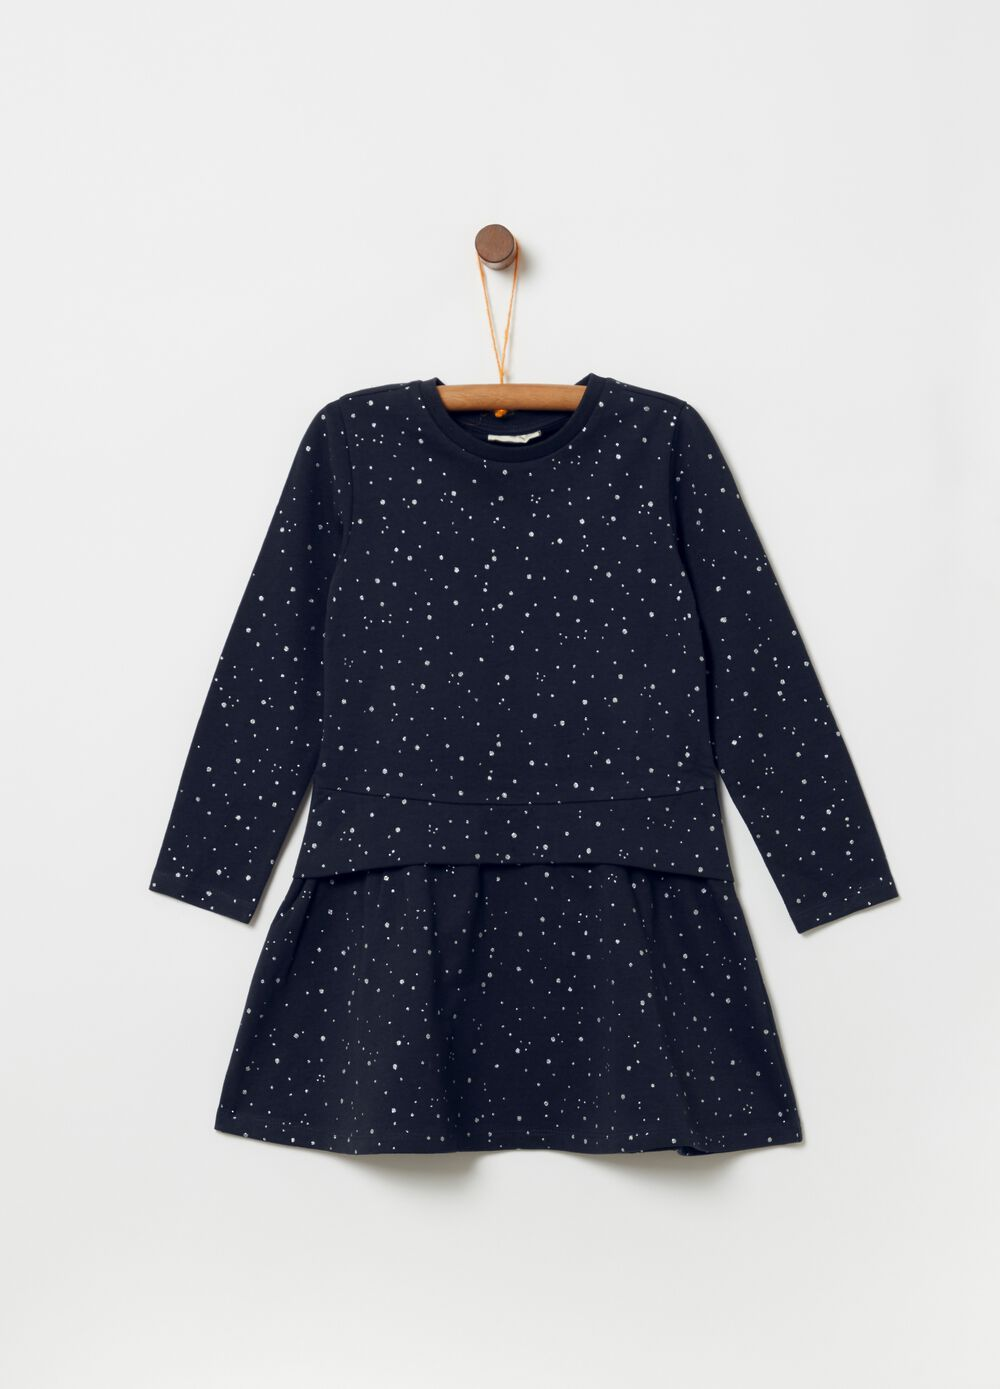 Dress with micro polka dot glitter print